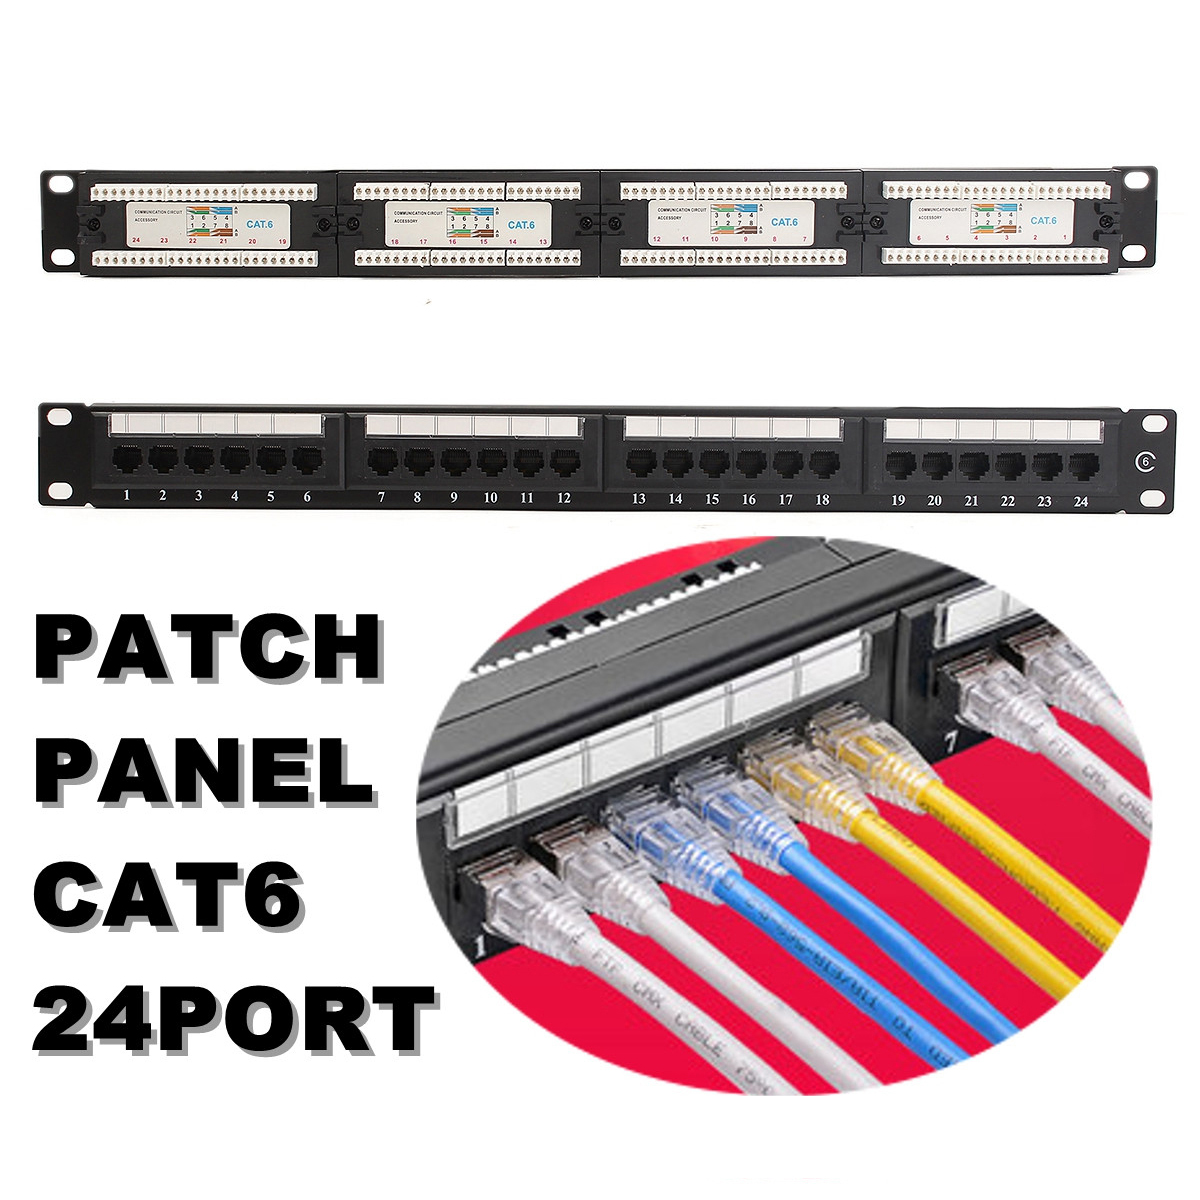 RJ45 CAT 6 Ethernet Network LAN Adapter Connector Cable Mount Bracket 24 Port/Wst CAT5E Patch Panel 1U for 19 Inch Rack Mount 10 8ports cat 5e patch panel 1u soho mini patch panel 8port 10 inch rack mount